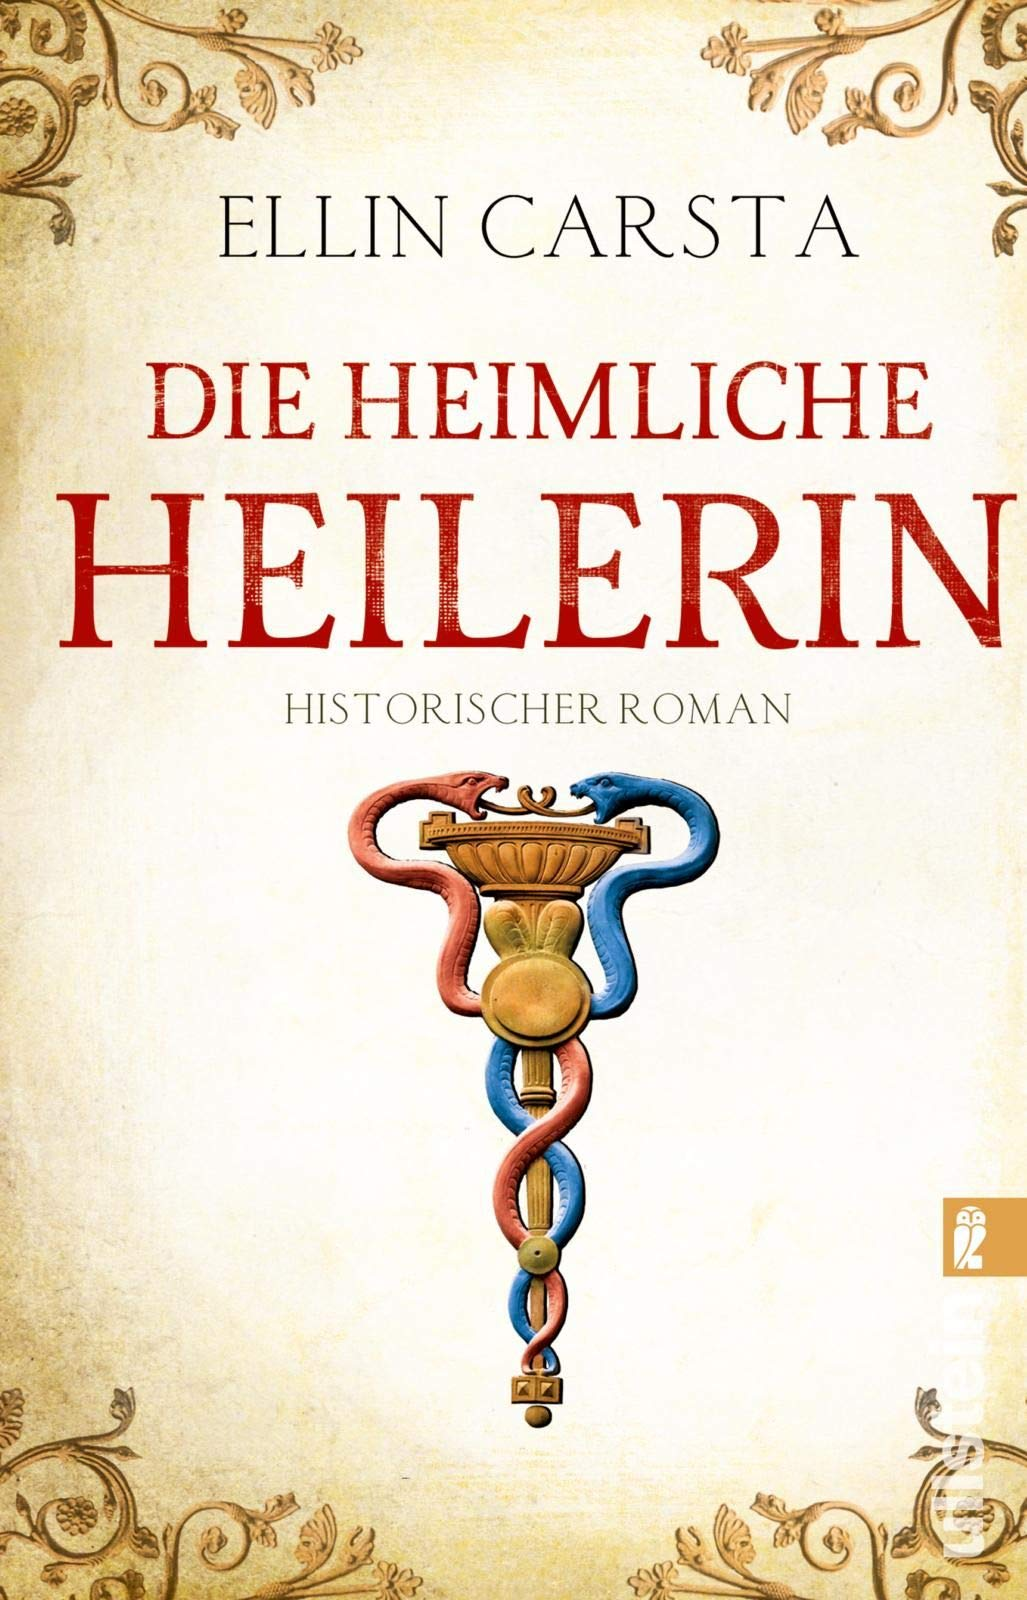 https://juliassammelsurium.blogspot.com/2020/05/rezension-die-heimliche-heilerin-ellin.html